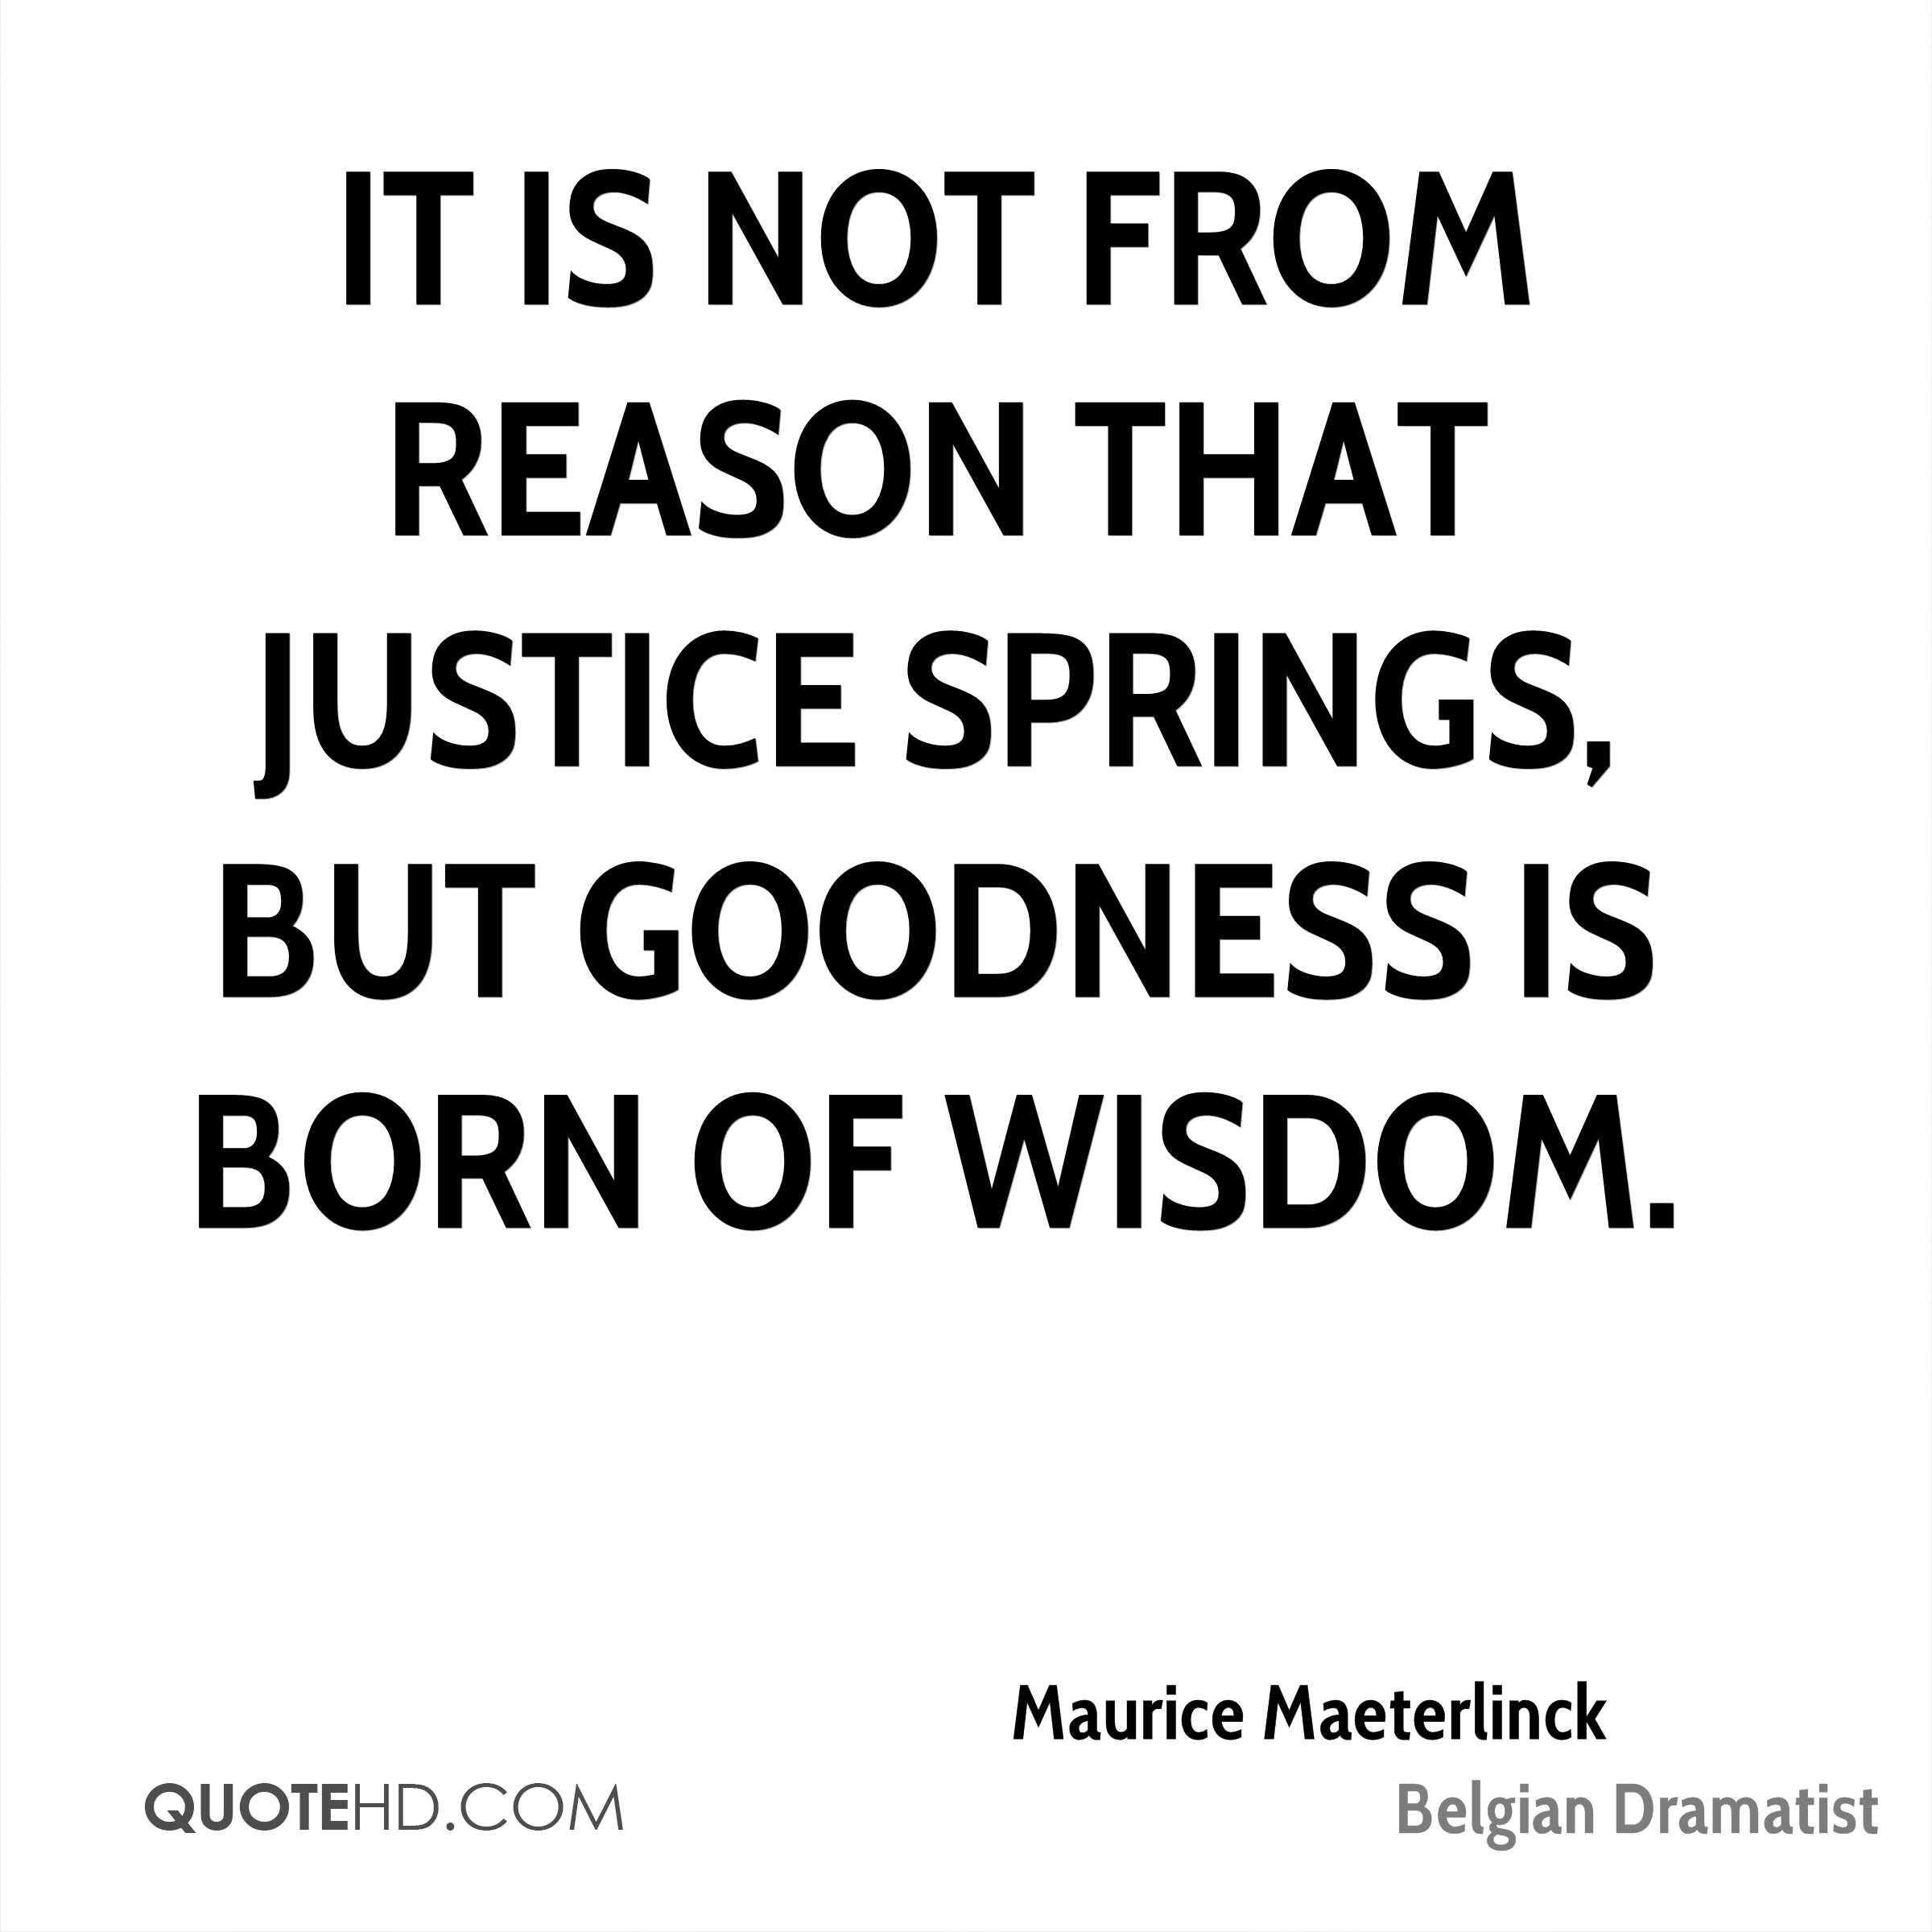 It is not from reason that justice springs, but goodness is born of wisdom.